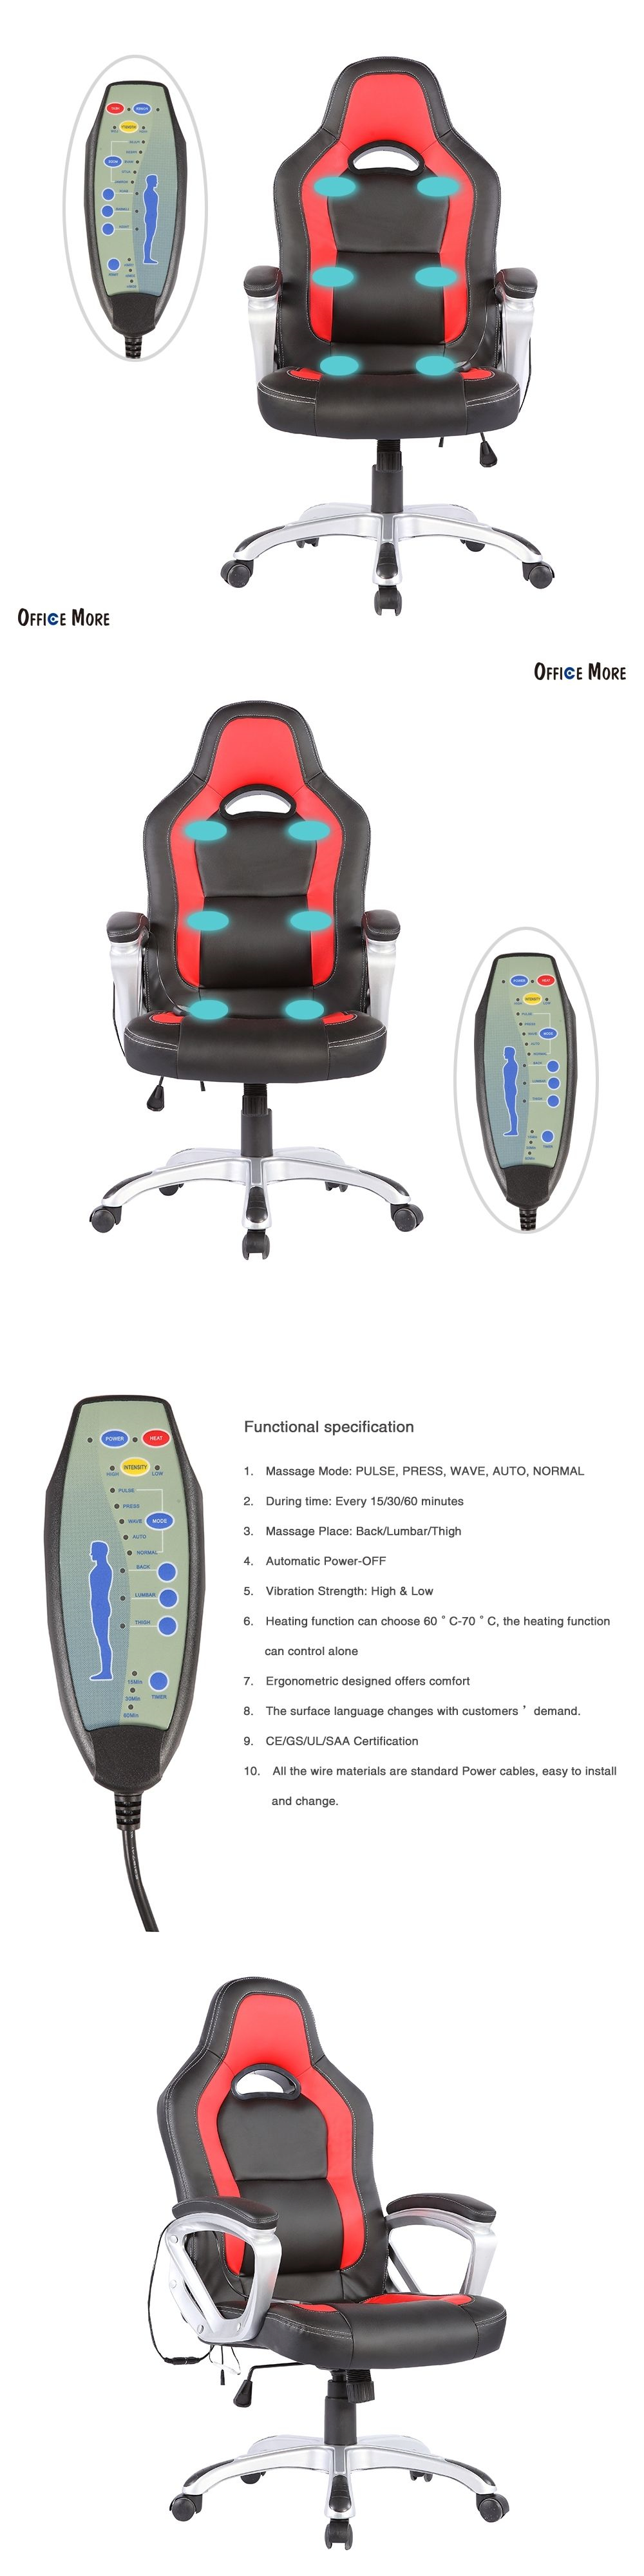 Electric Massage Chairs Heated Vibrating Race Car puter fice